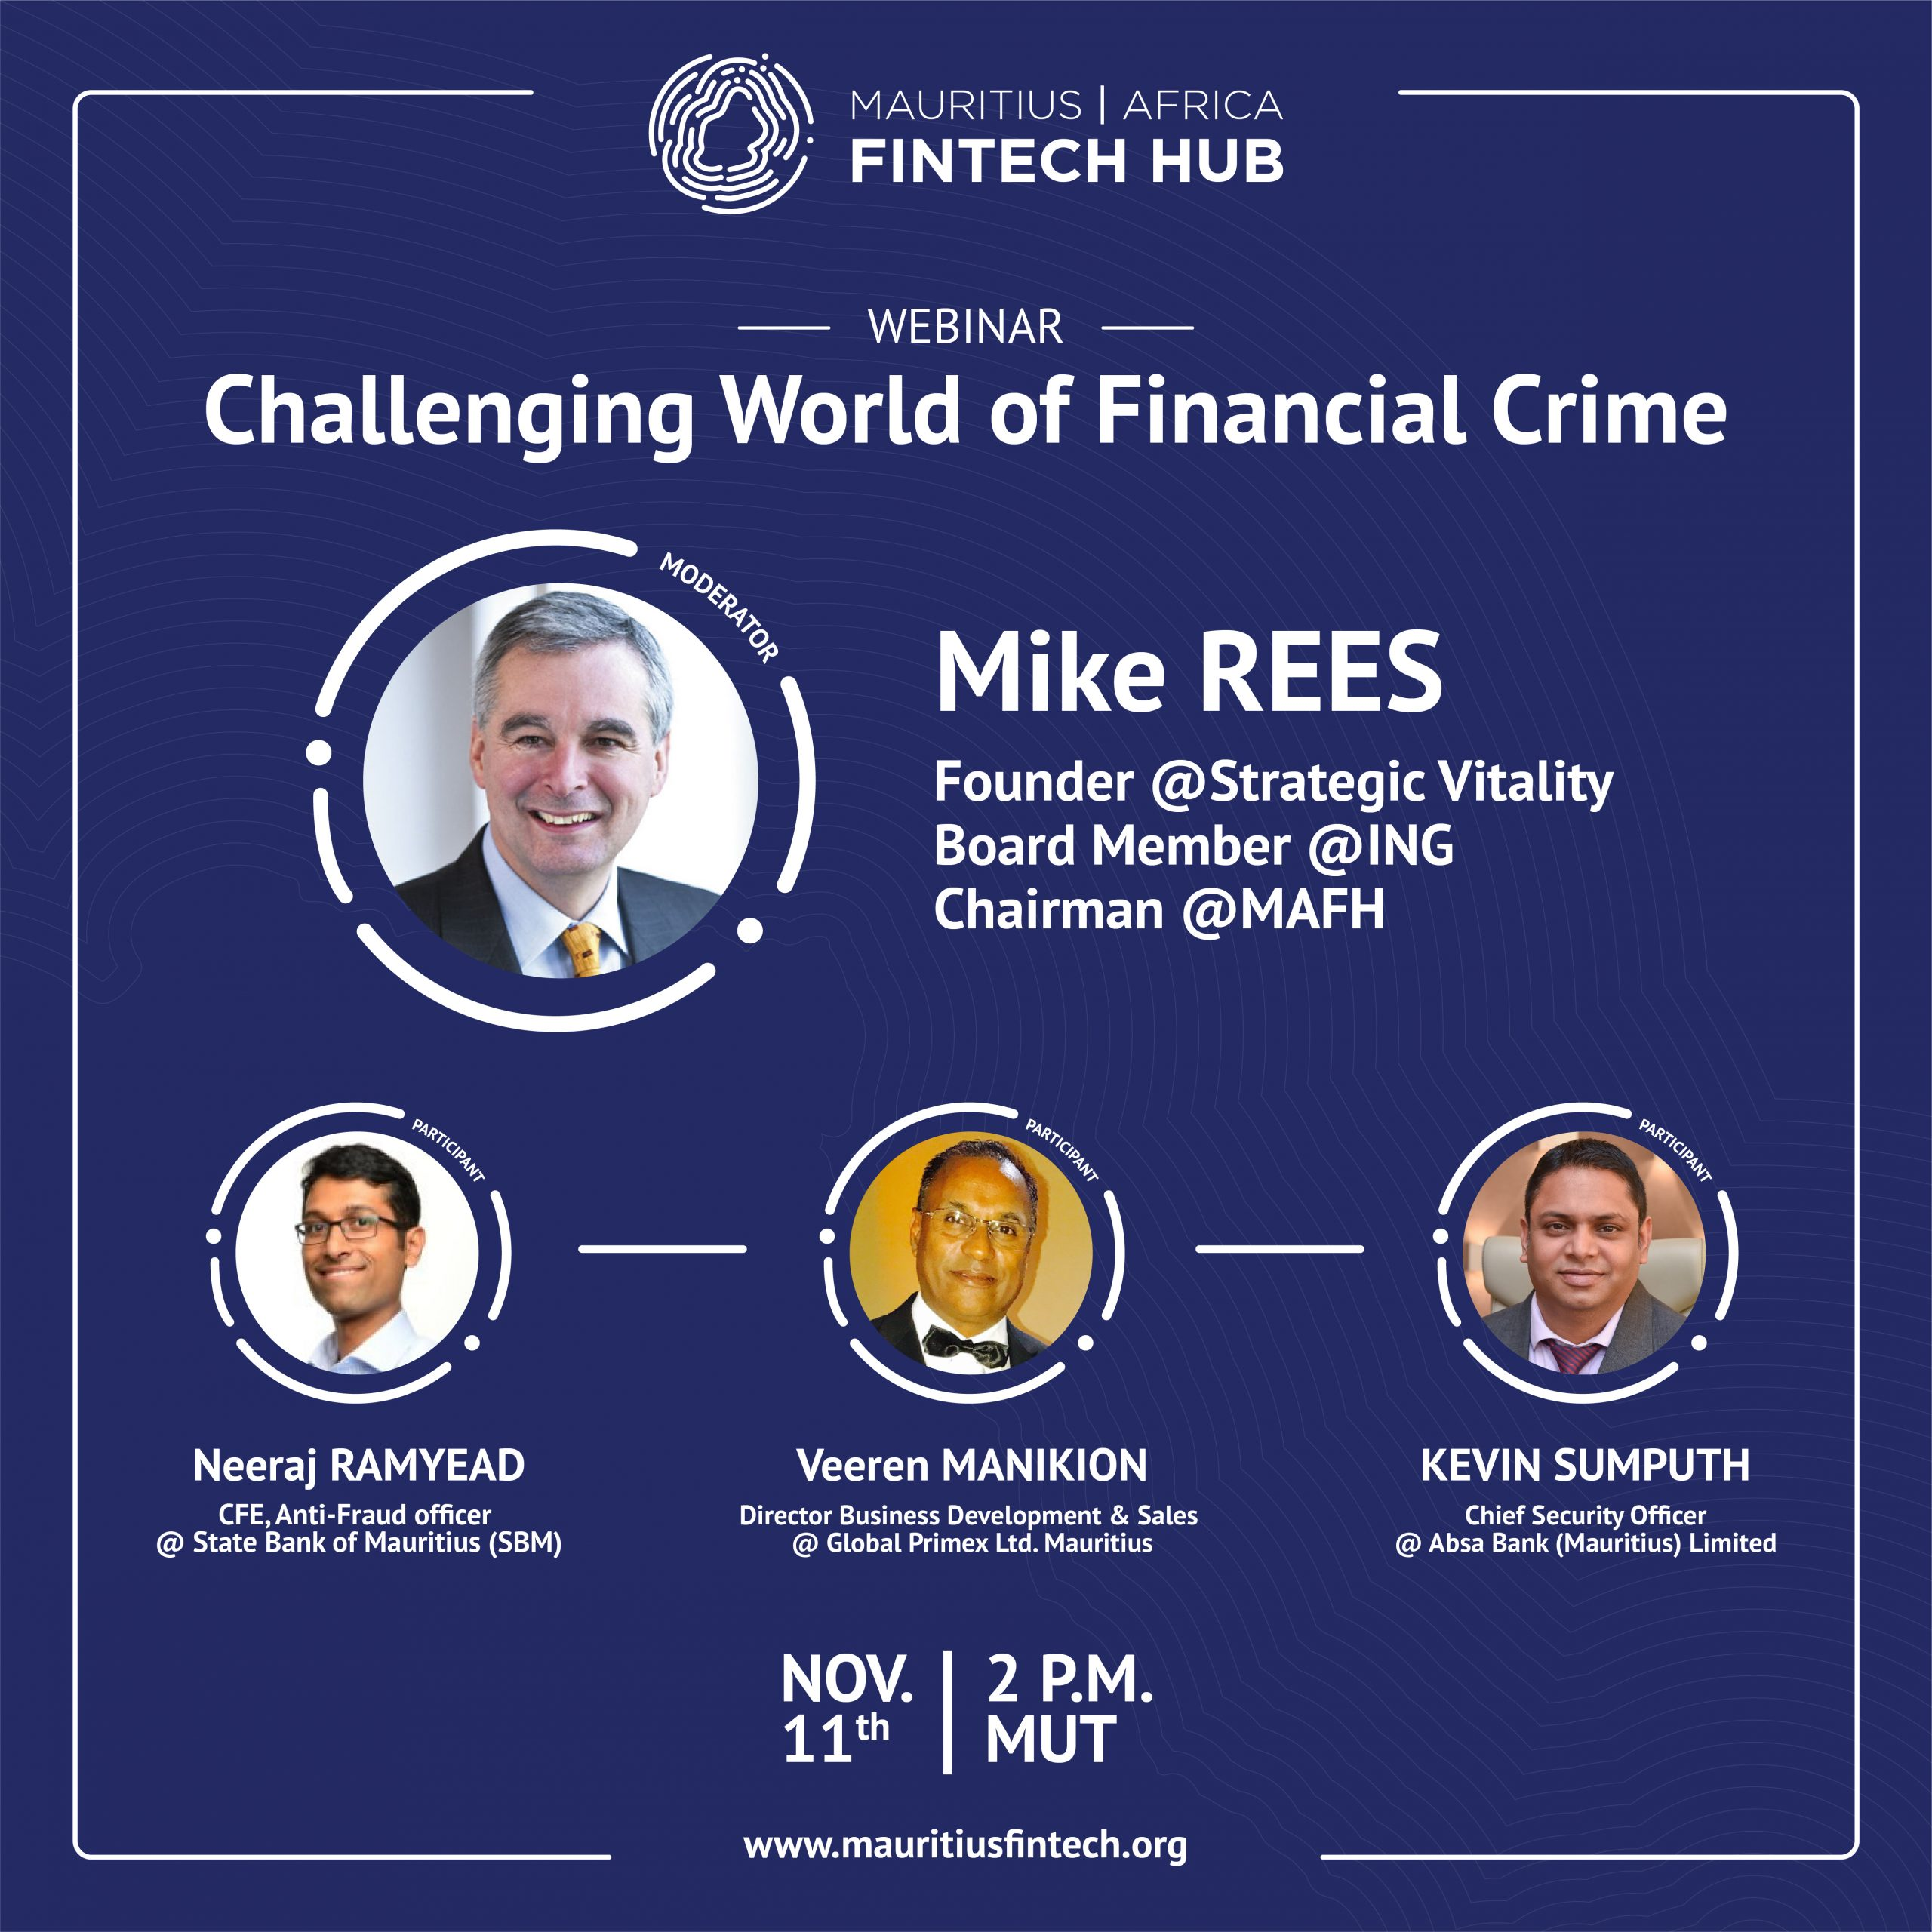 mafh webinar challenging world financial crime